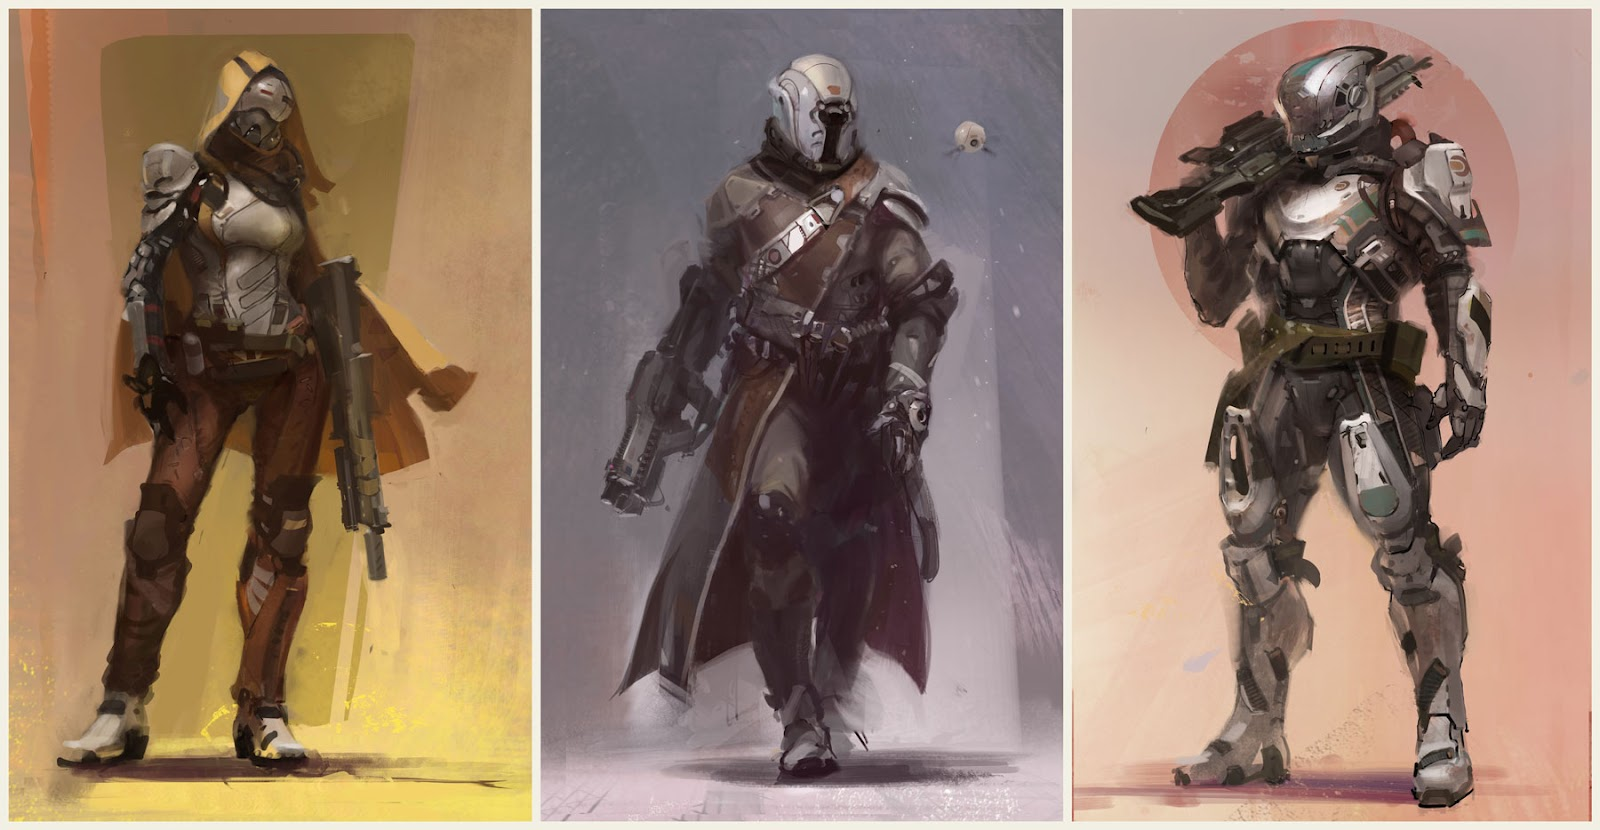 http://img1.wikia.nocookie.net/__cb20131215120245/destinypedia/images/1/15/Guardians.jpg